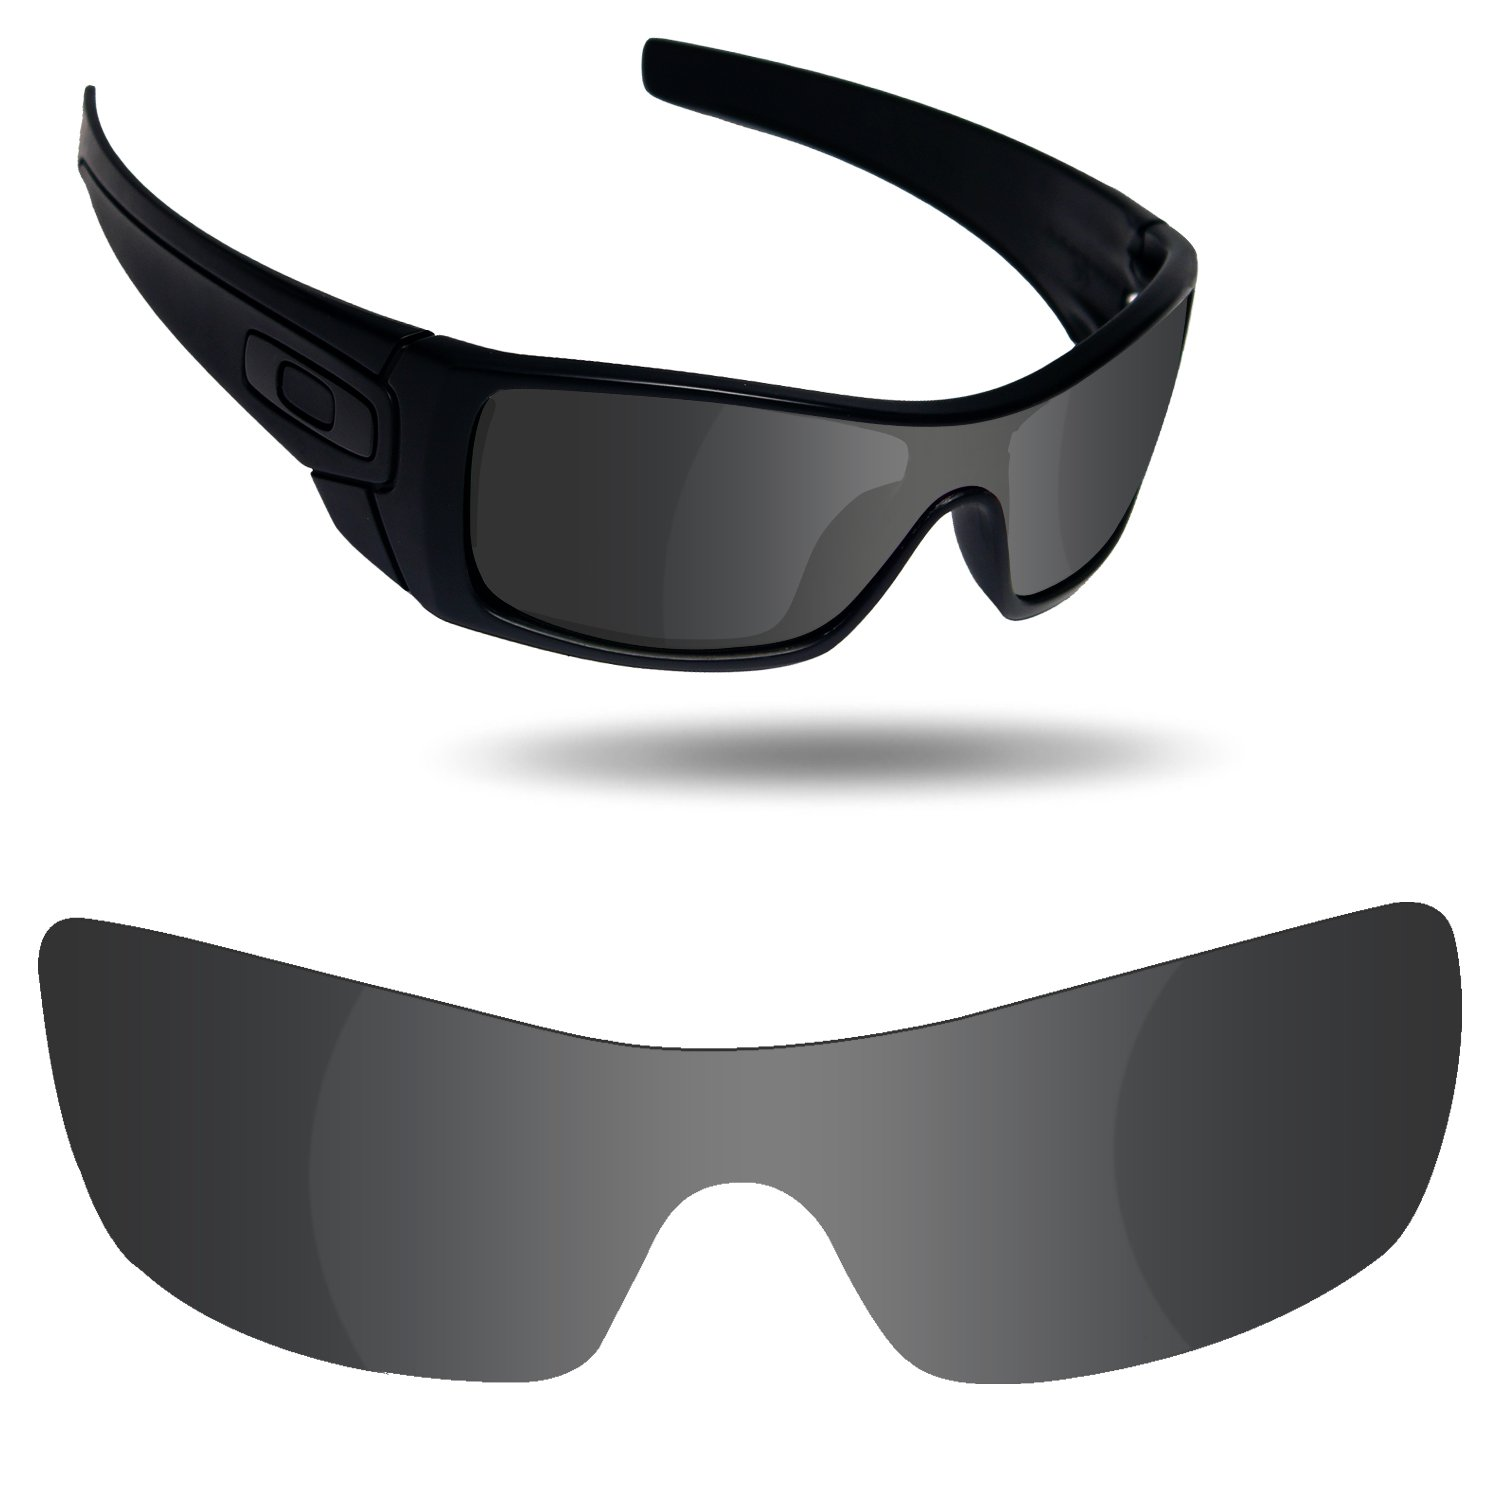 Fiskr Anti-Saltwater Replacement Lenses for Oakley Batwolf Sunglasses - Various Colors by Fiskr